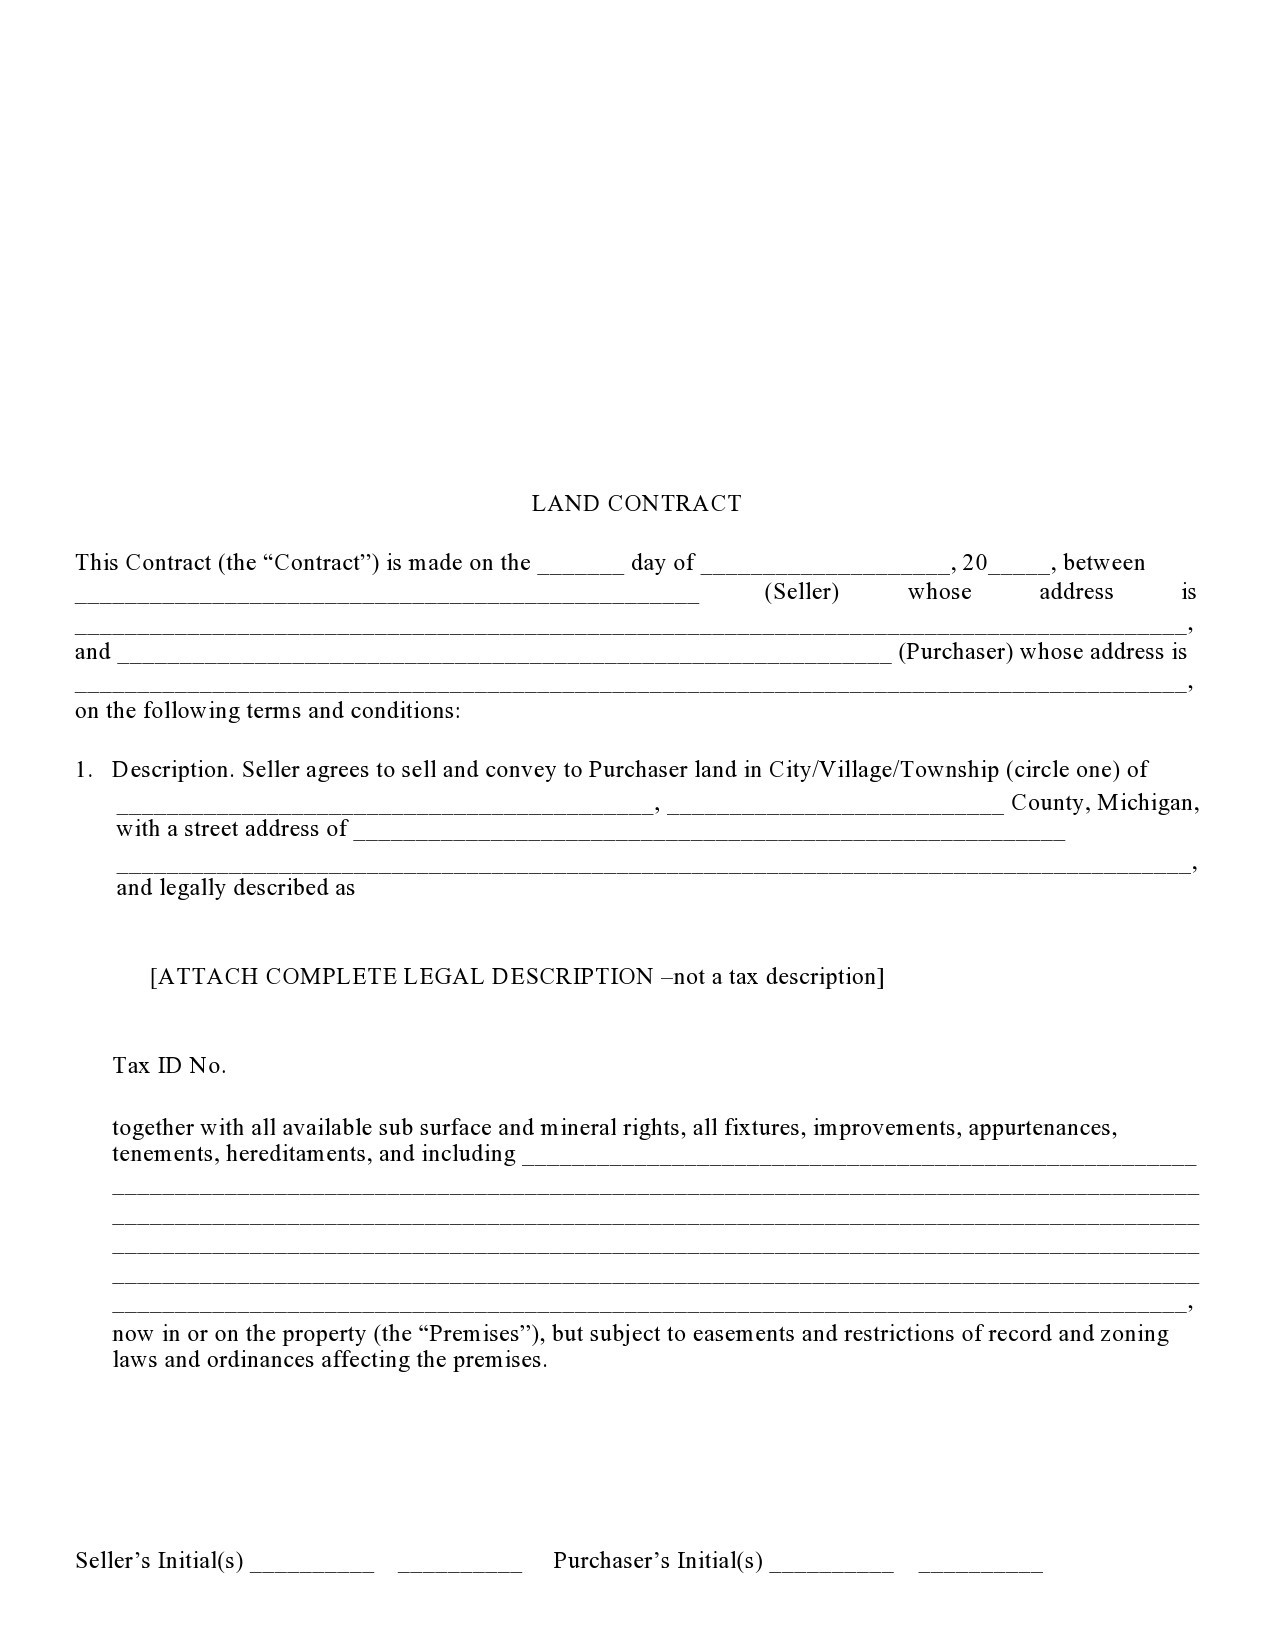 Free land contract form 23